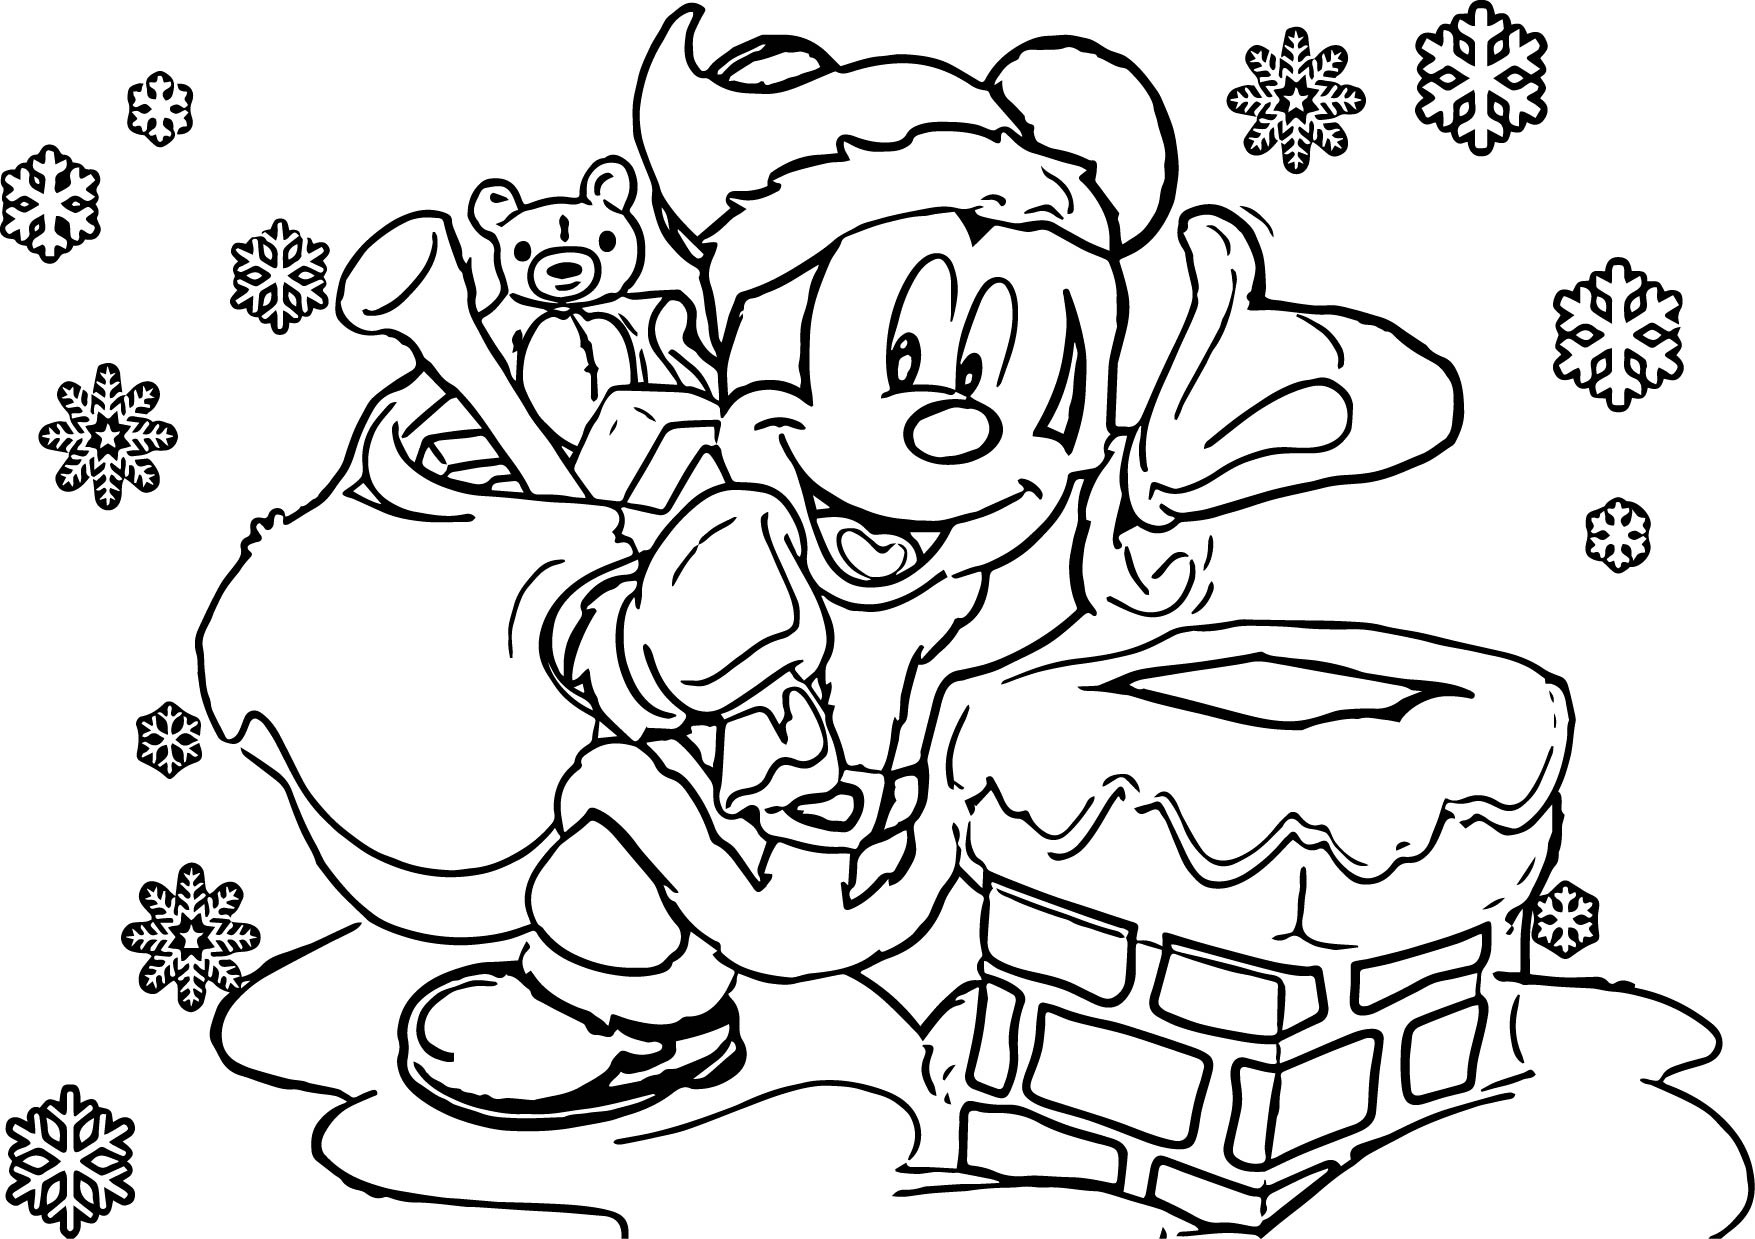 Christmas Cartoon Characters Coloring Pages At